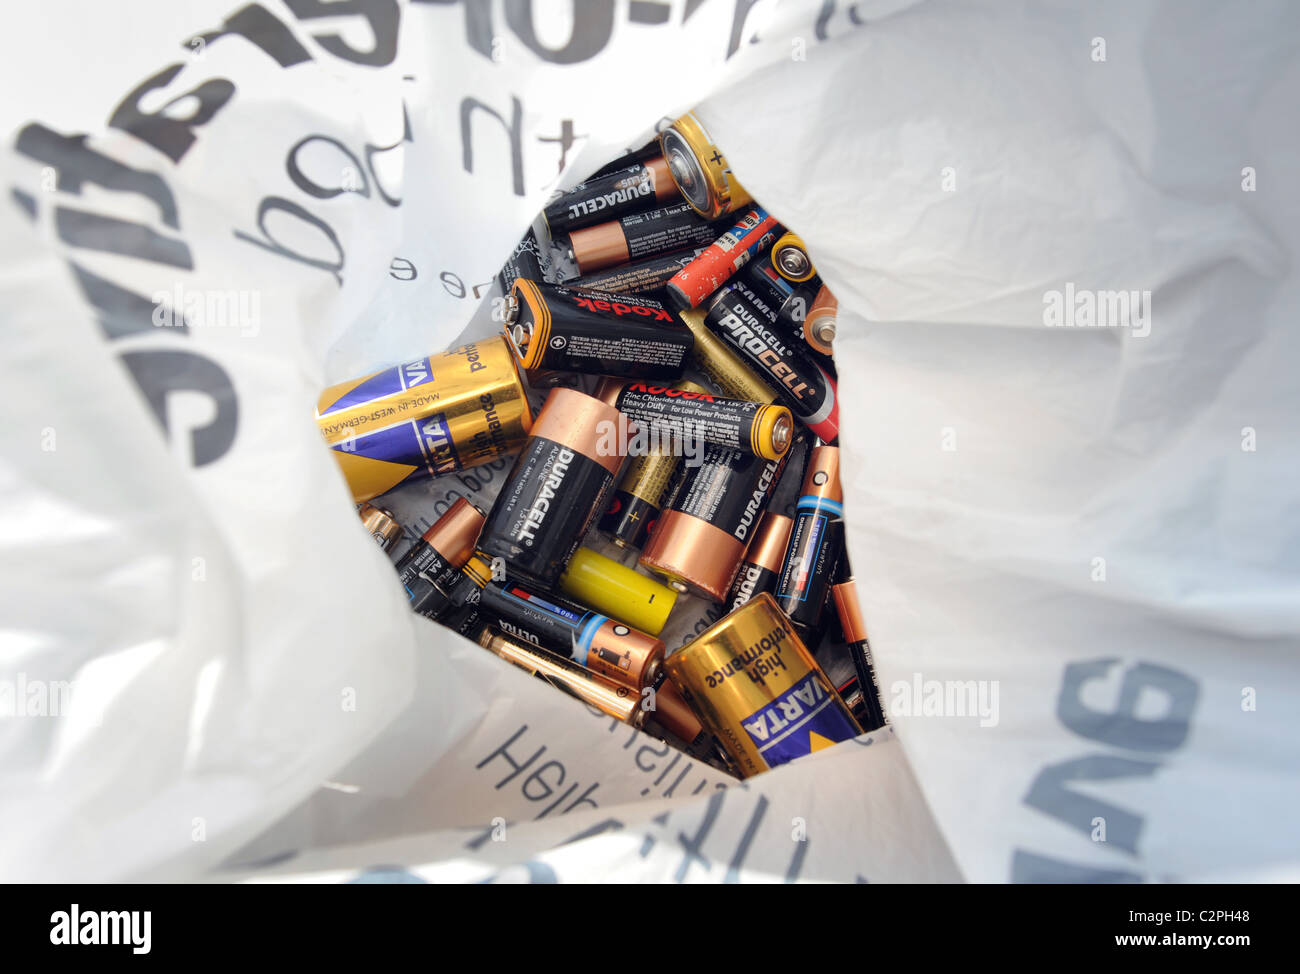 USED BATTERIES IN PLASTIC CARRIER BAG READY TO BE RECYCLED RE RECYCLING RECYCLE ENERGY ELECTRICAL GREEN ETC UK - Stock Image